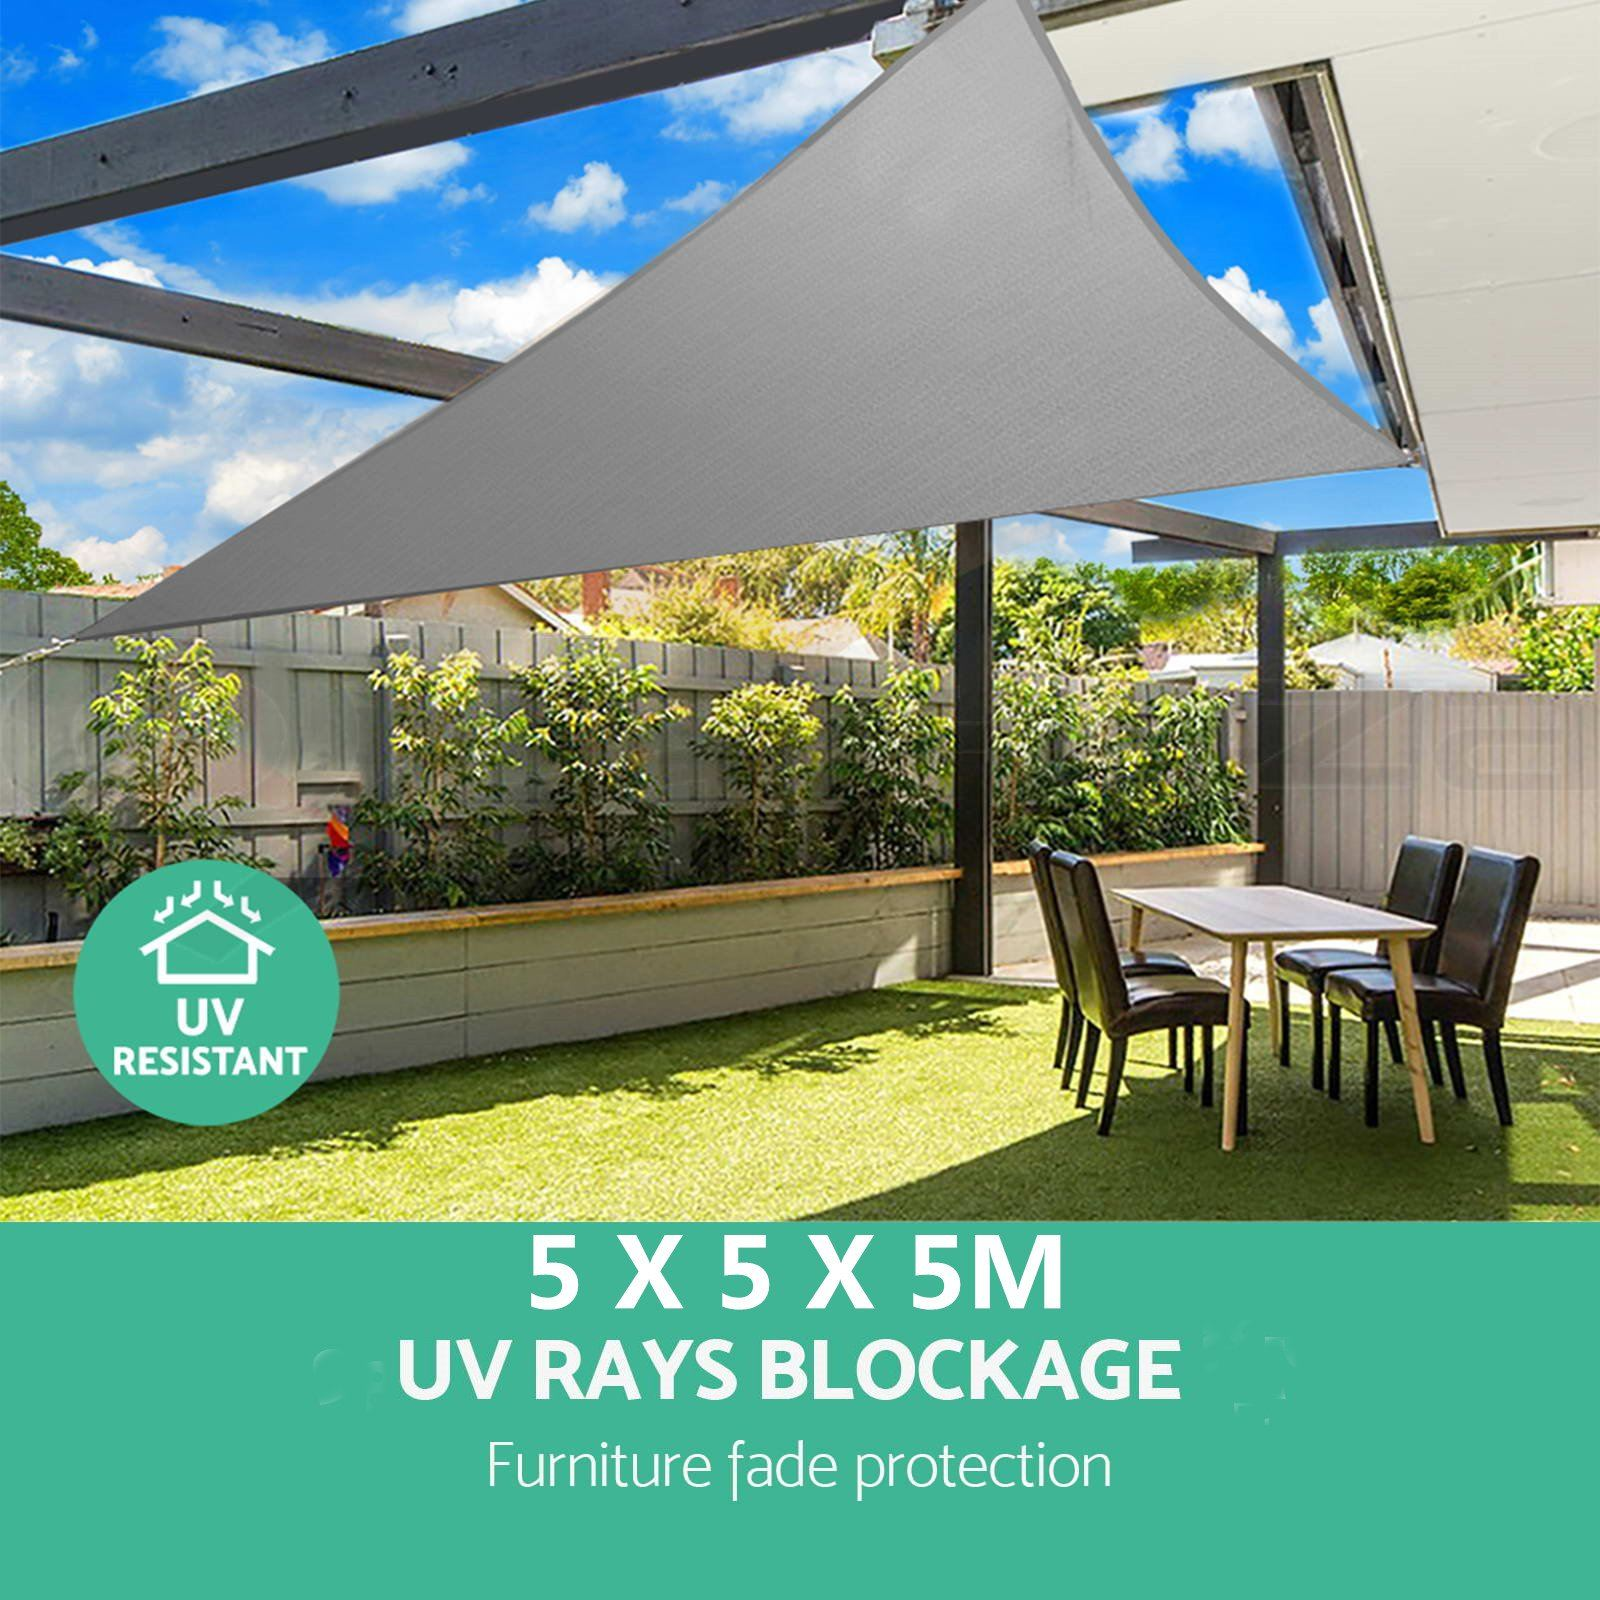 5m Triangle Shade Sail Net Cloth Outdoor Swimming Pool Waterproof Sun Shade Sail Prevent UV Canopy Home Garden Awning Cover Cap